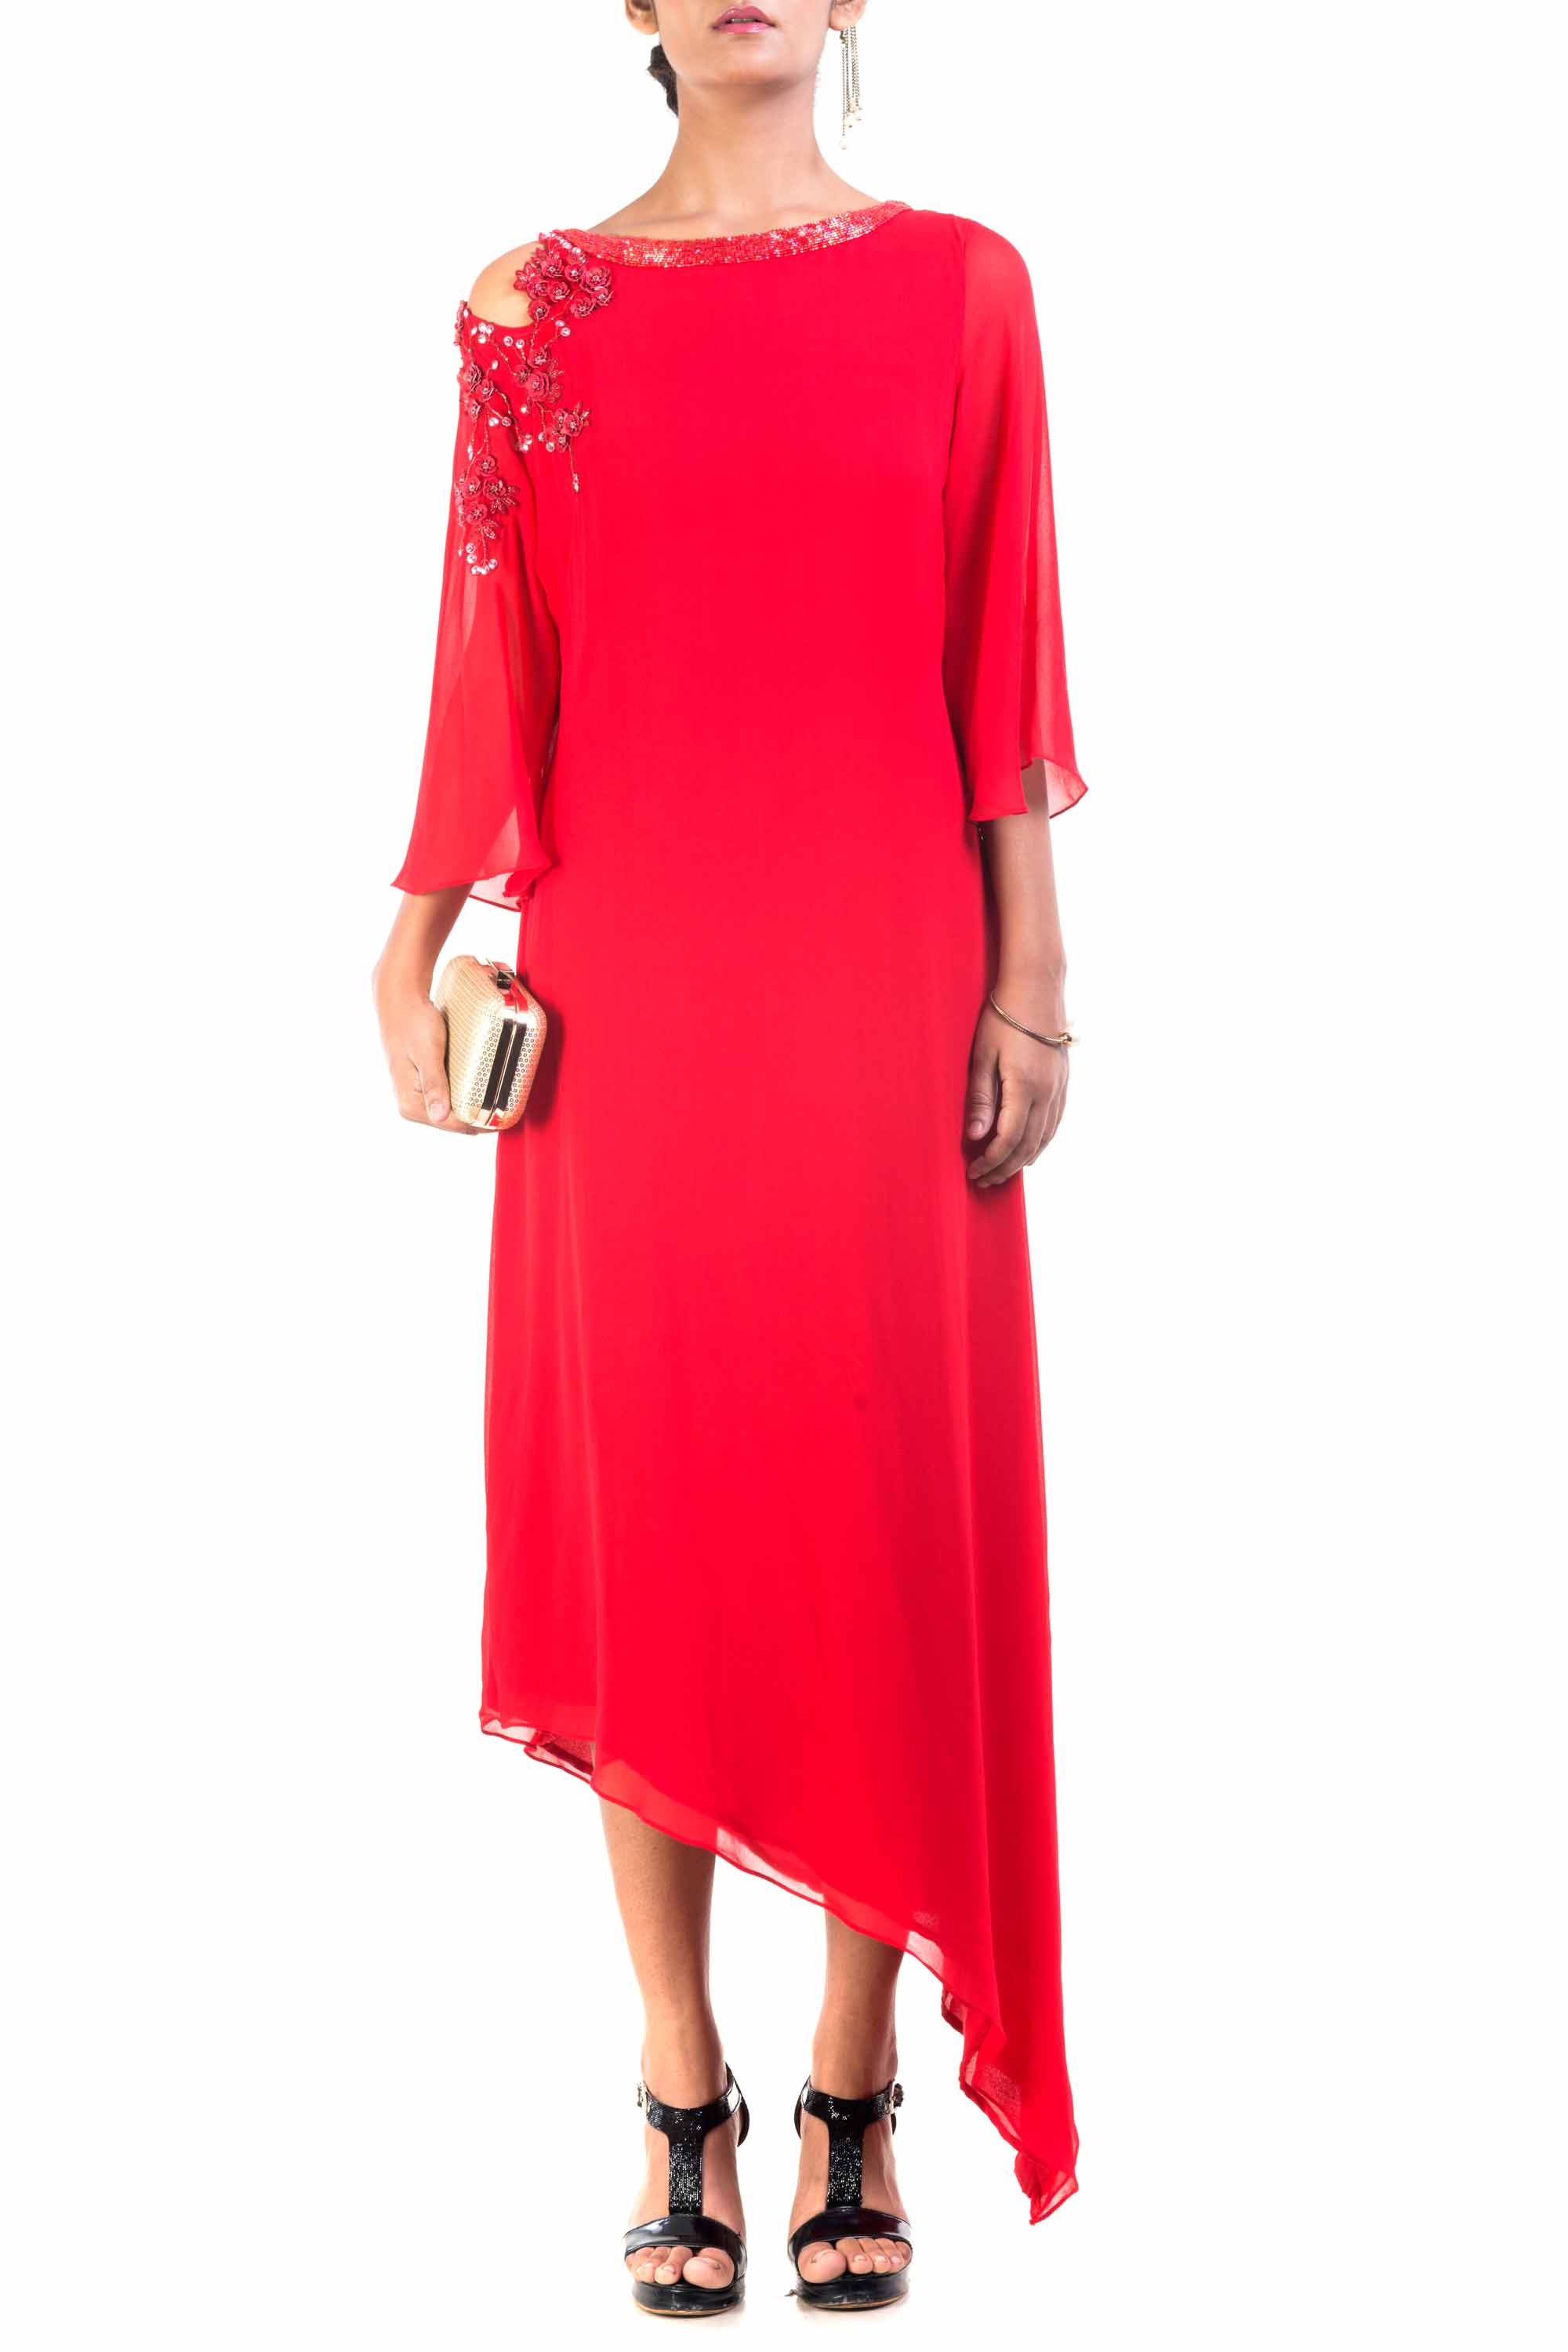 Red Cold Shoulder Asymmetrical Dress Front